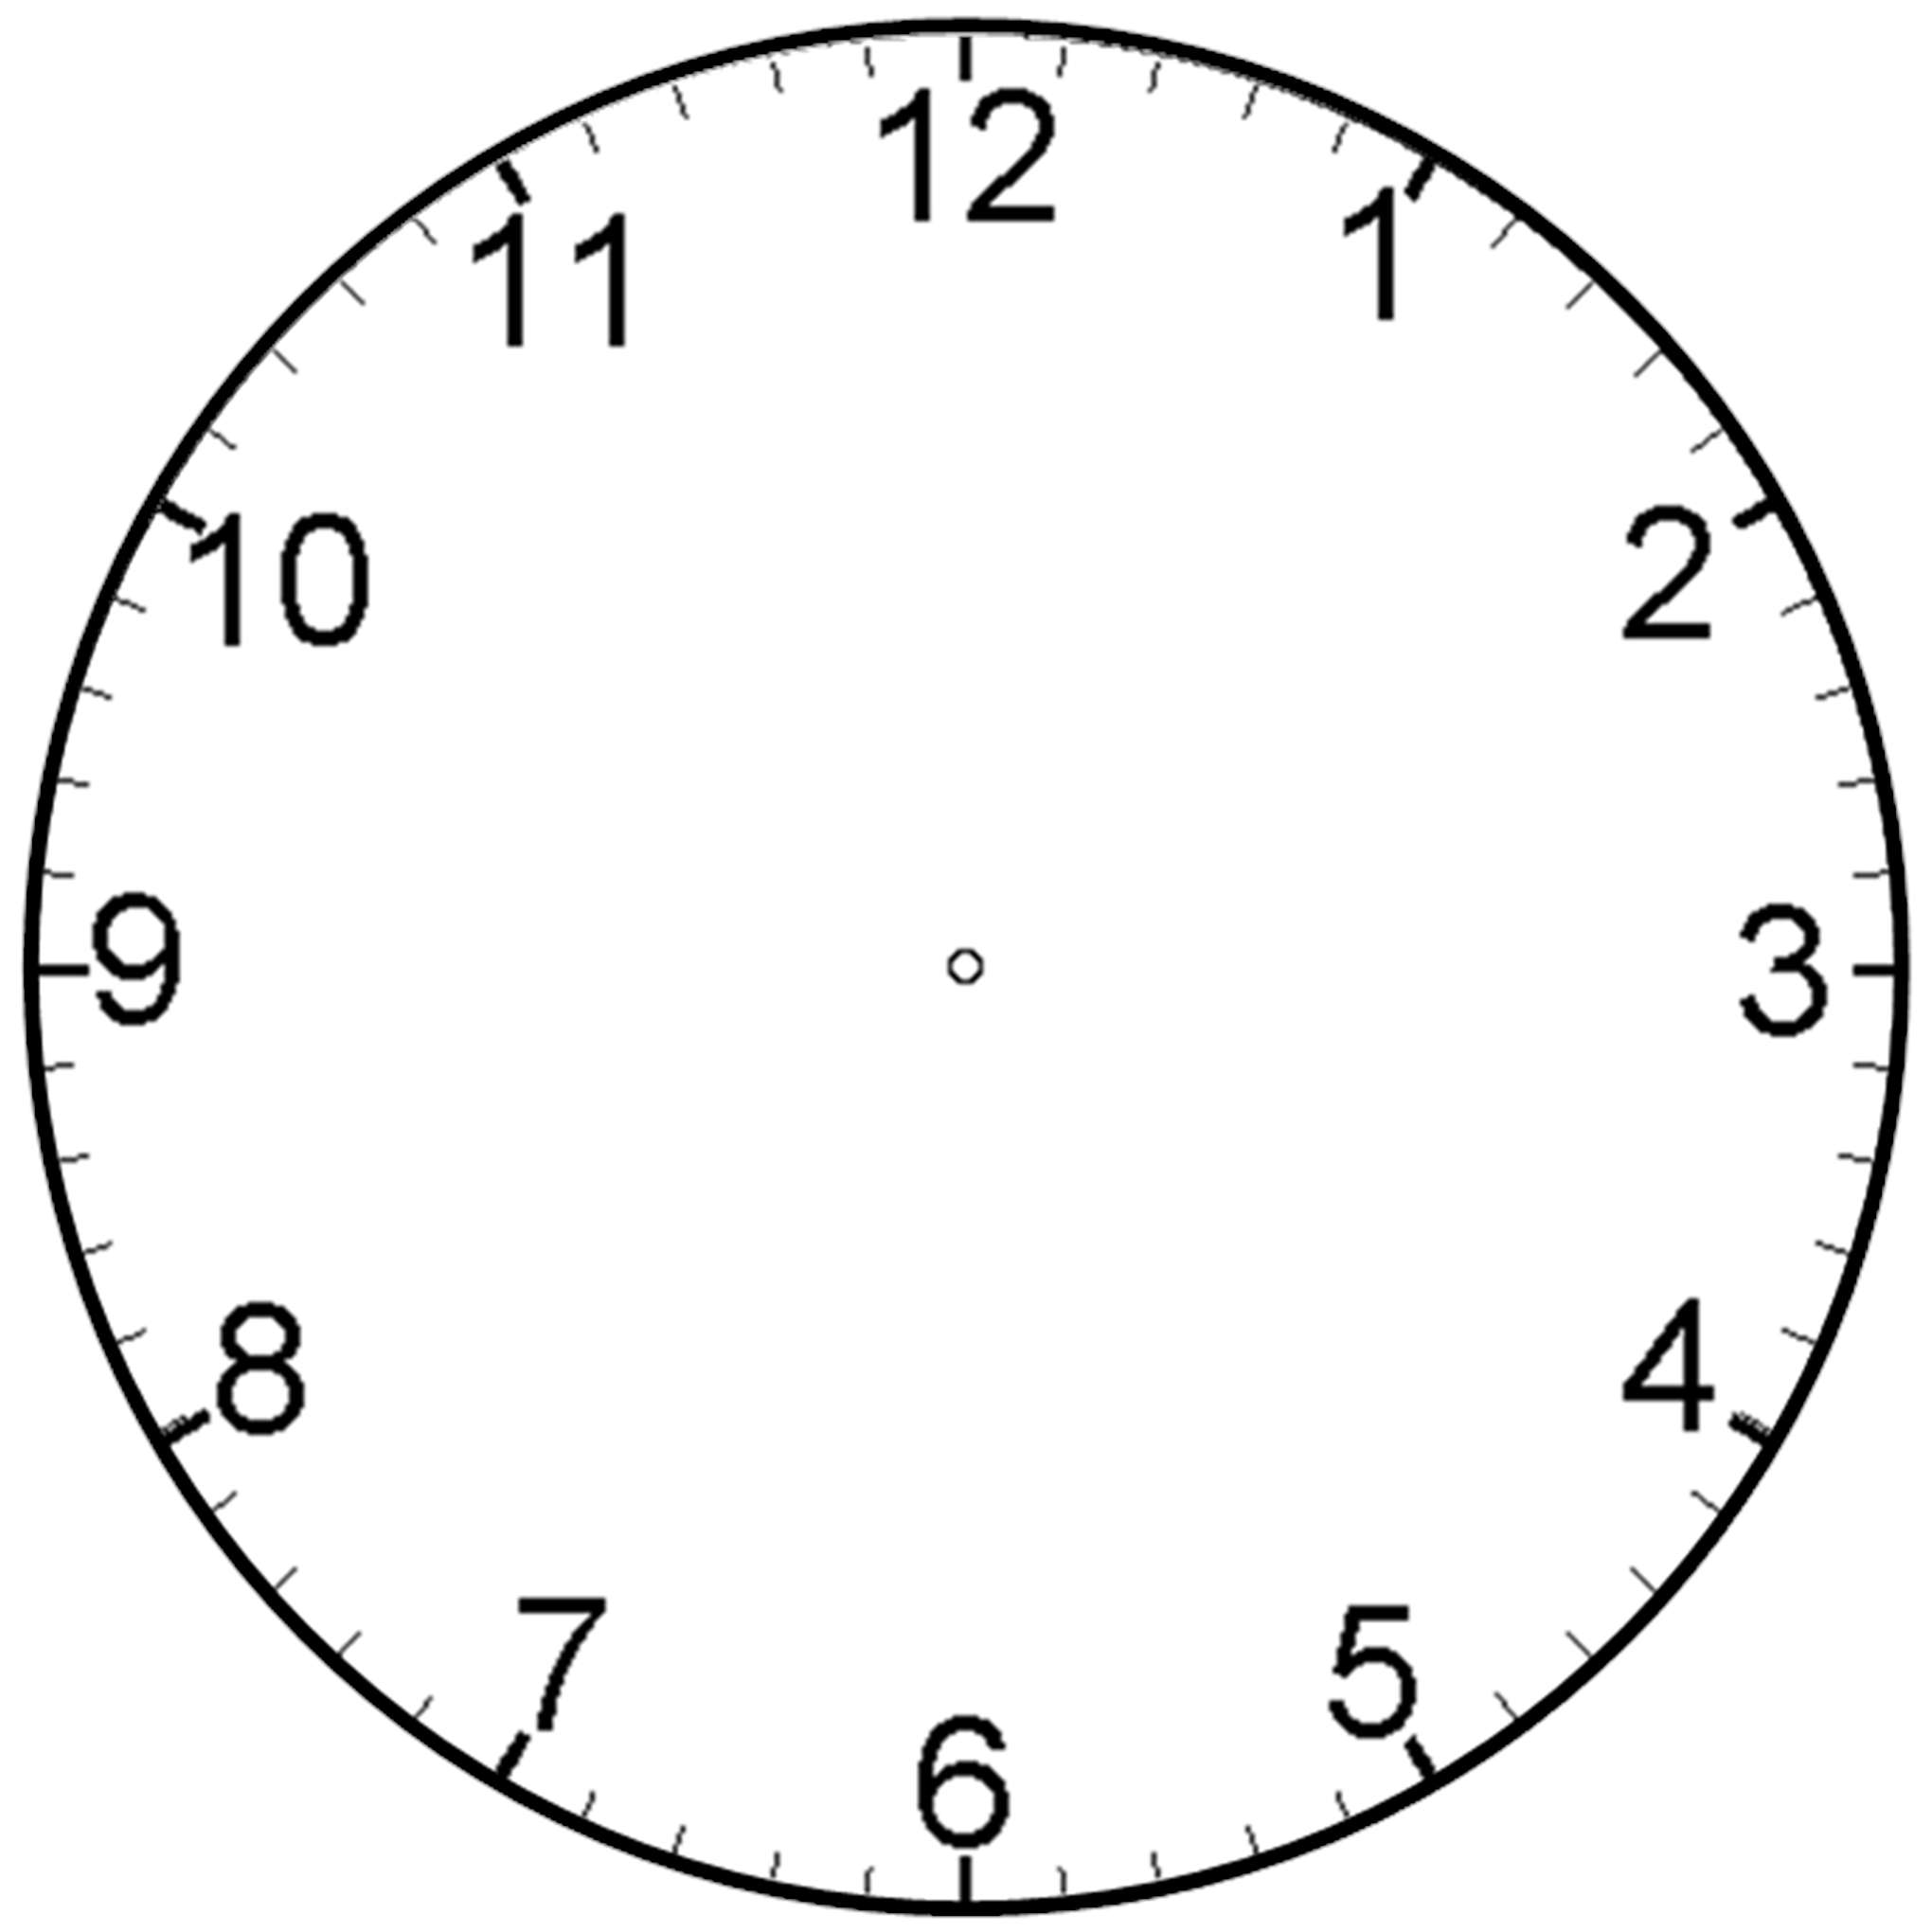 clock without hands One has to input the hour and minute hands on the clock as per requested time and there are even using printable clock templates simplifies this work as.